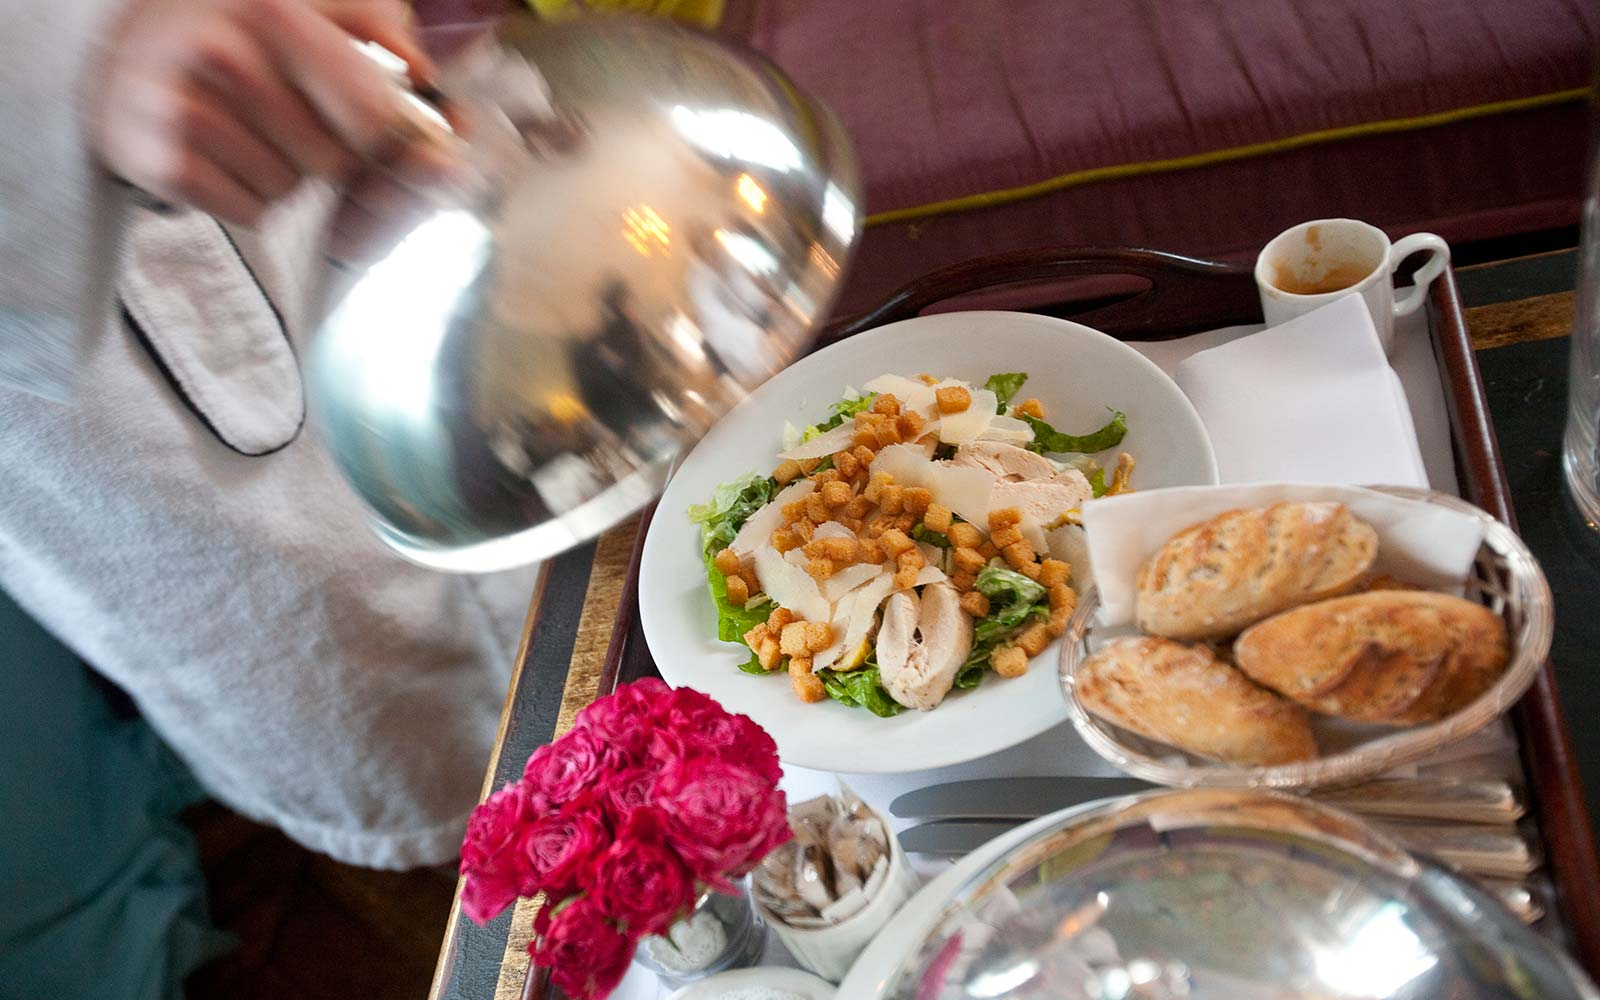 Hotel Room Service Dishes to Avoid, According to a Hotel Chef